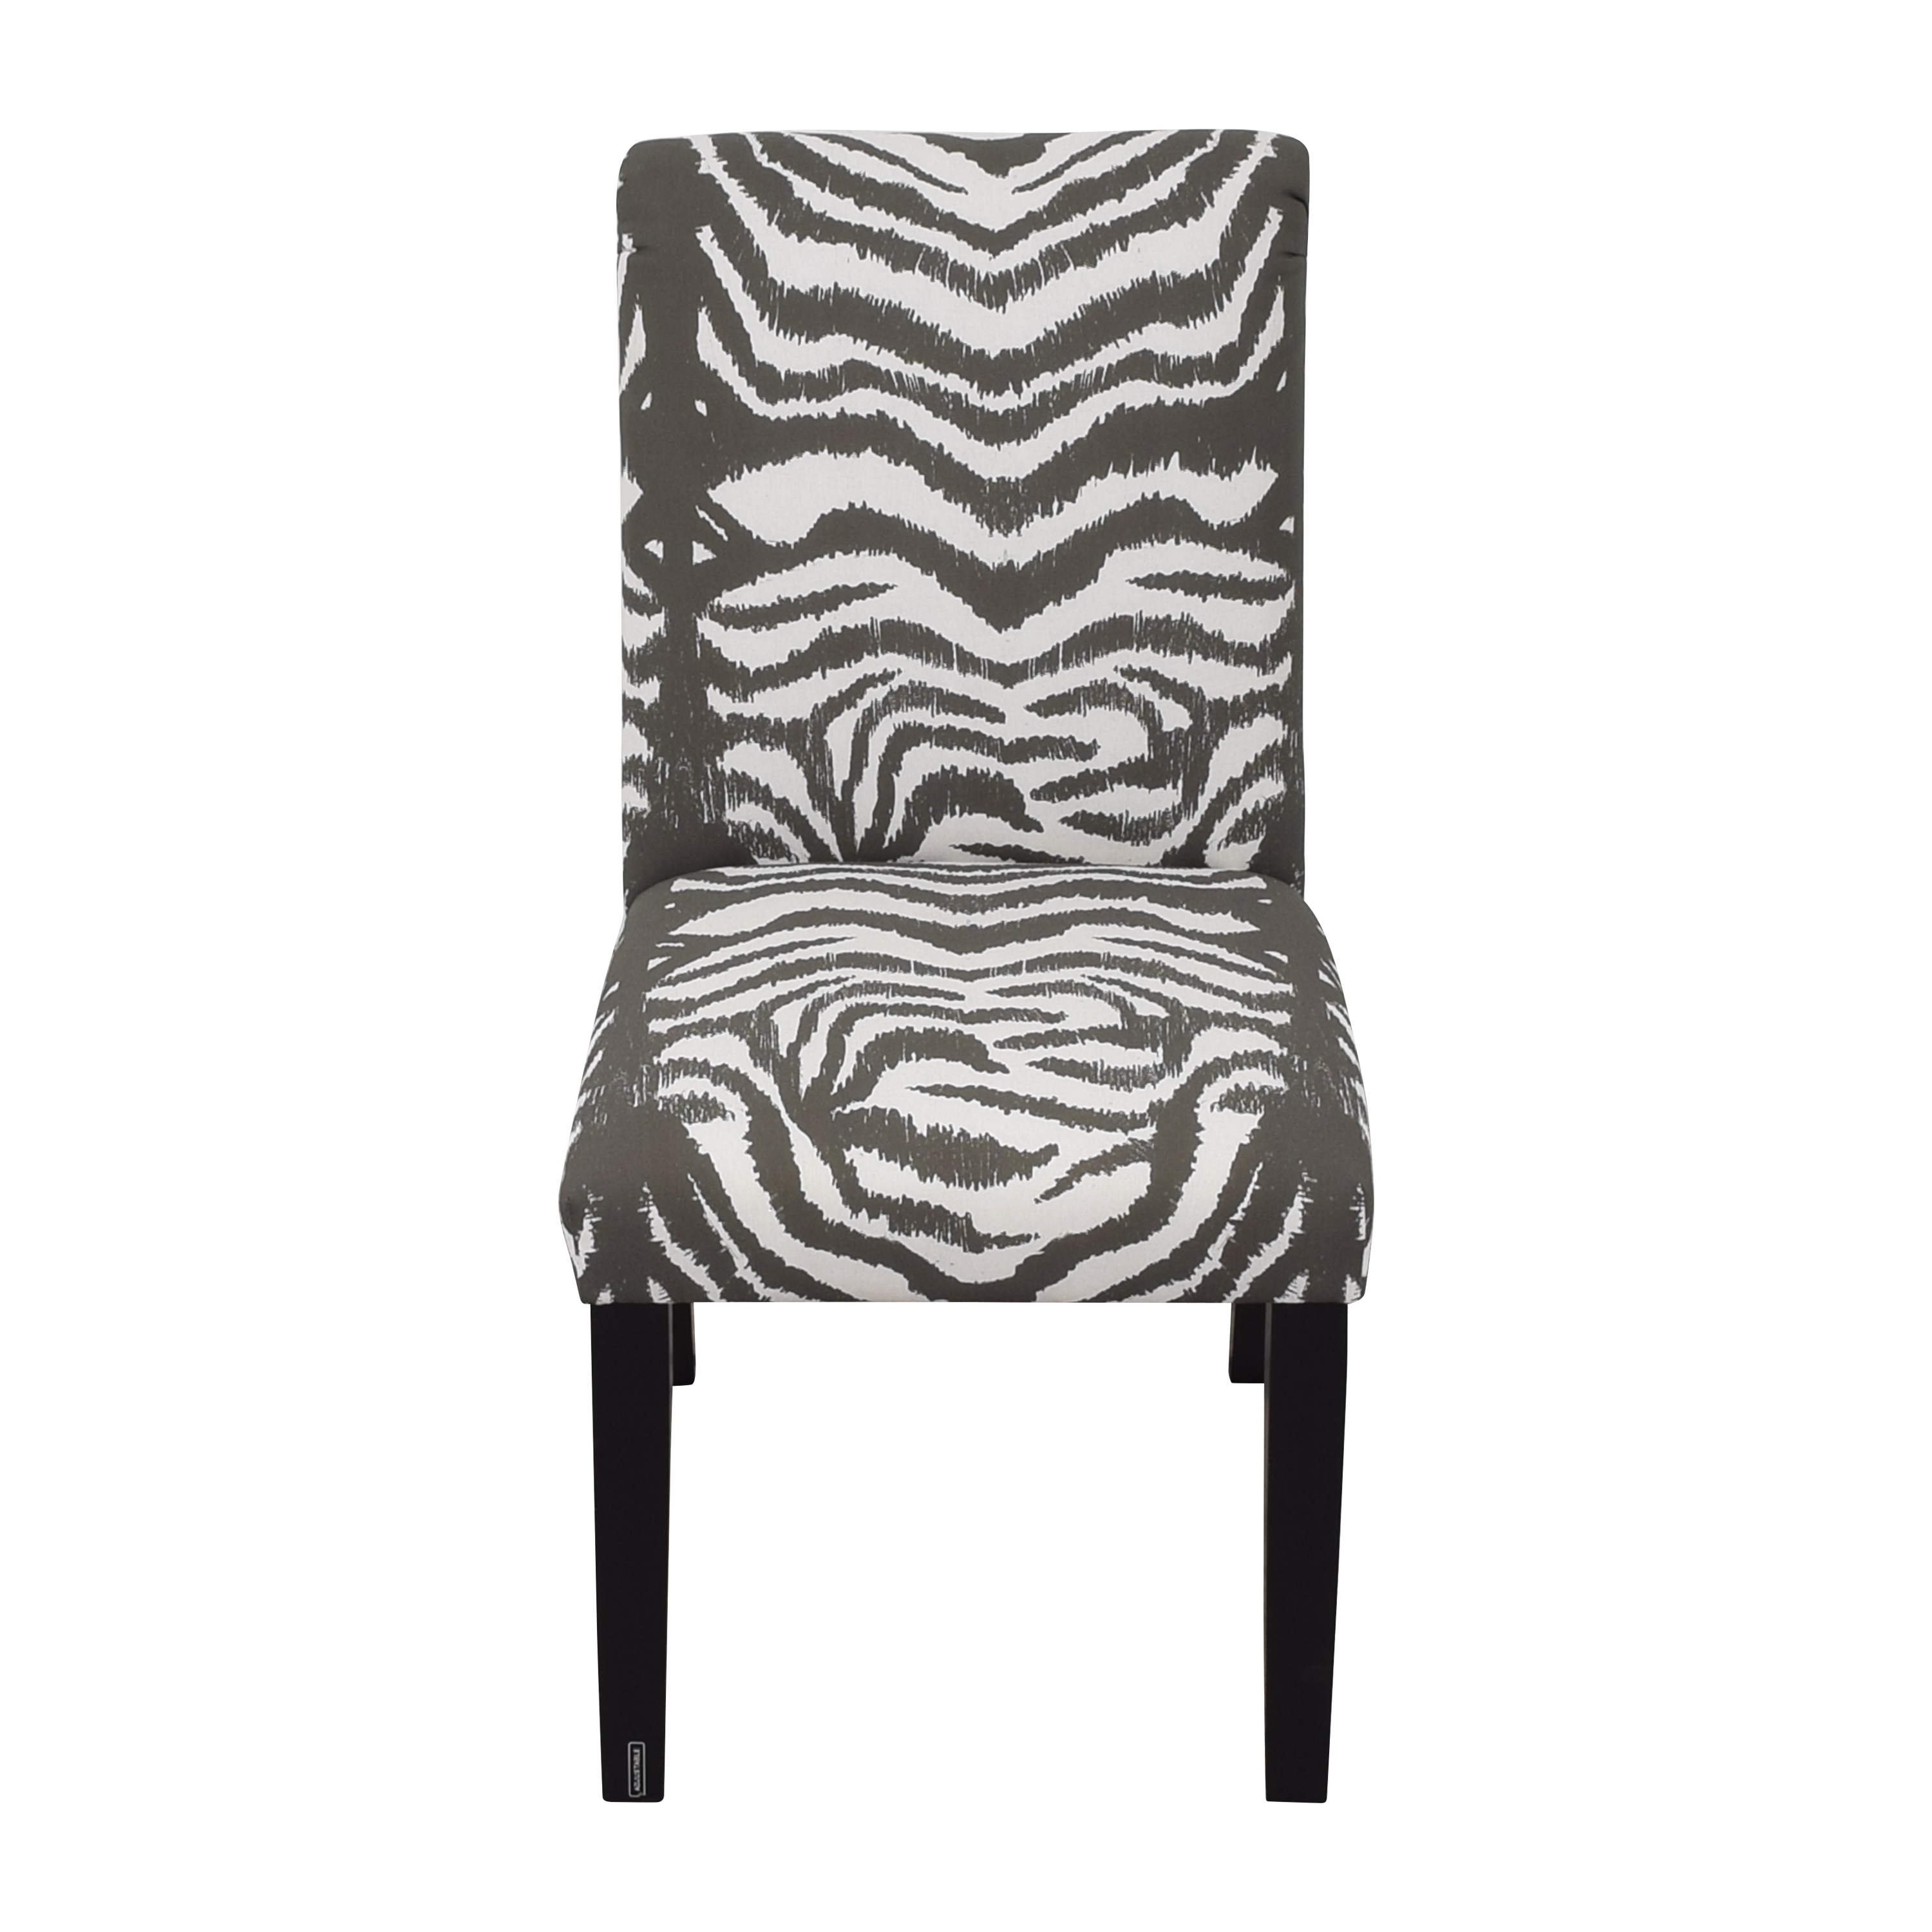 The Inside The Inside Zebra Classic Dining Chair second hand